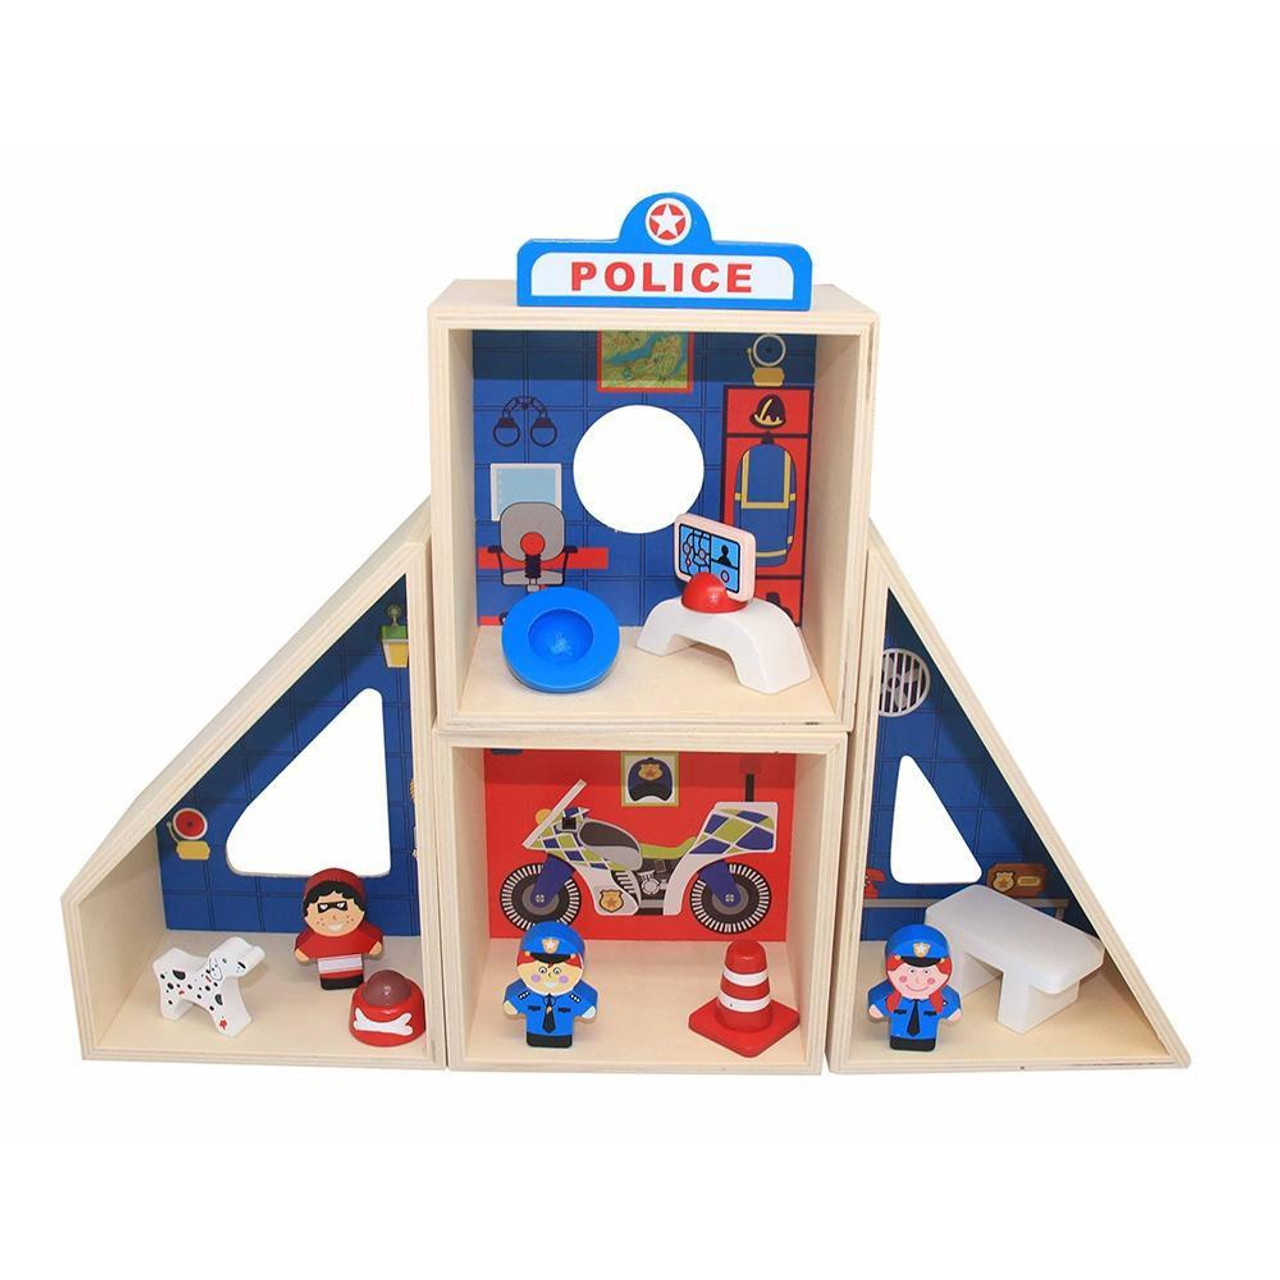 Toyslink Police Station Playset at Baby Barn Discounts Toyslink well finish wooden police station playset.